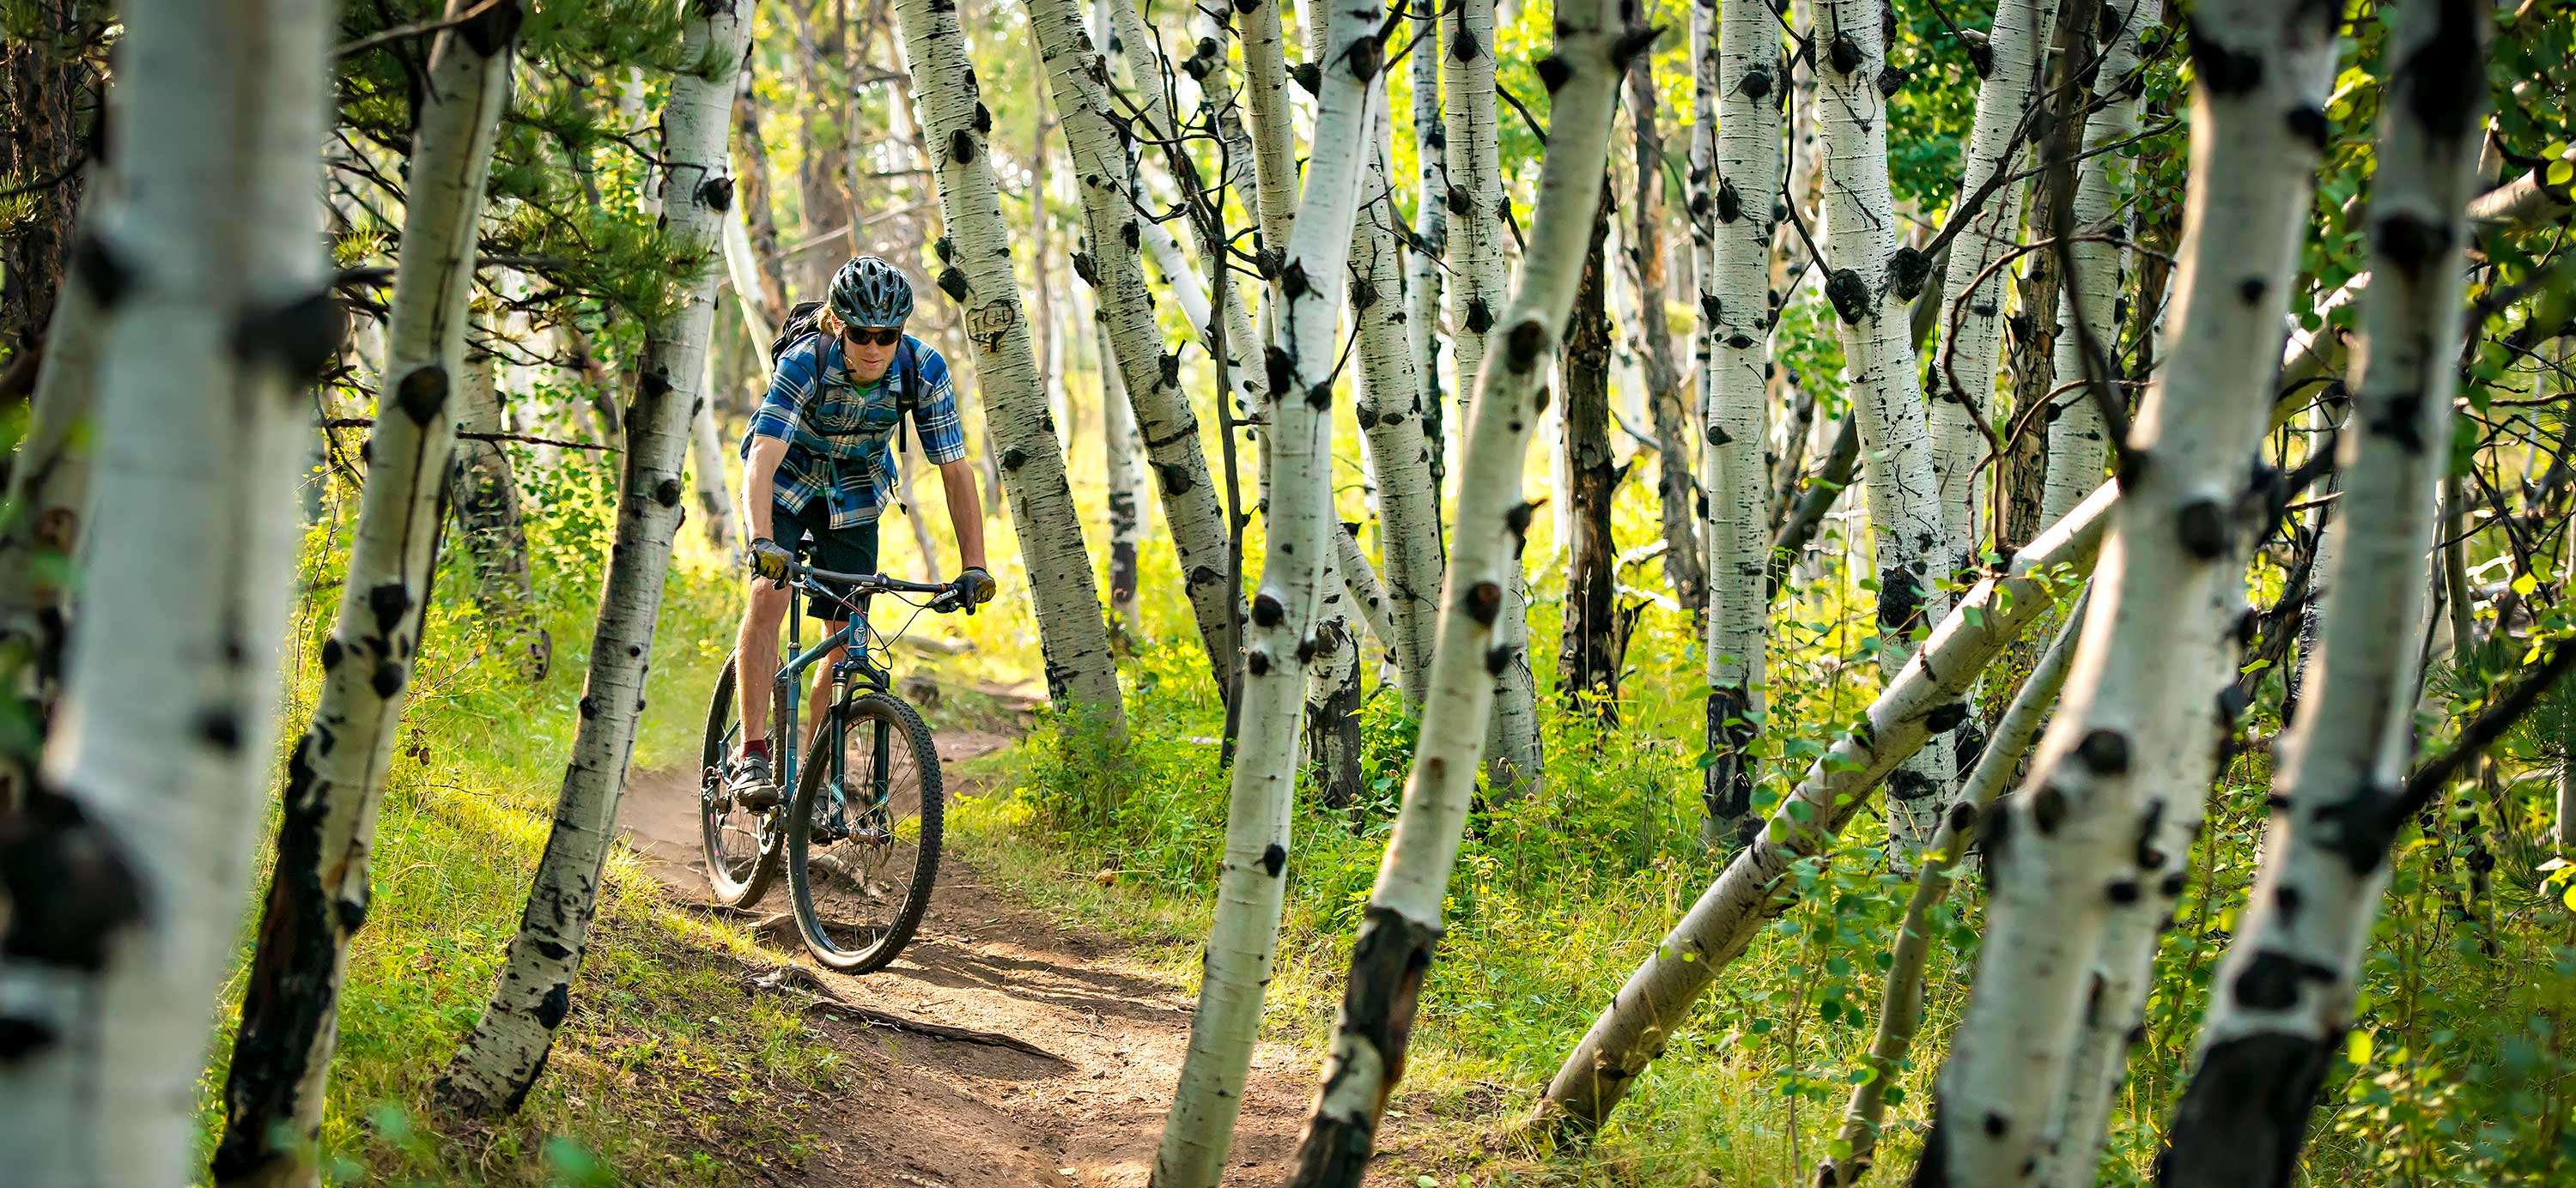 Mountain biker in trees